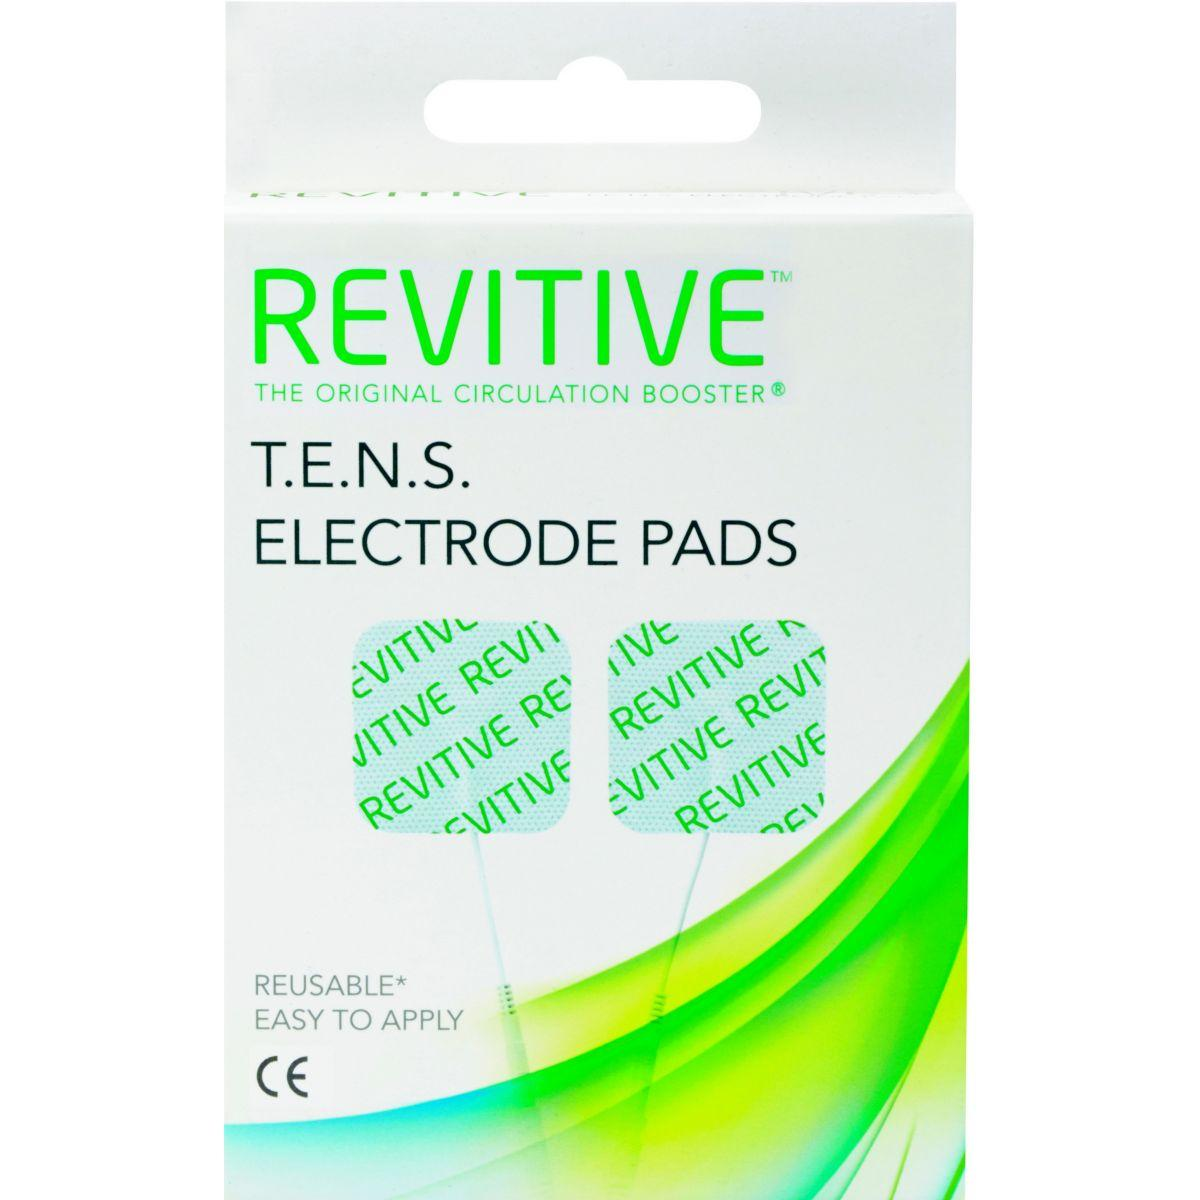 Acc. revitive electrodes pour circulatio - produit coup de coeur webdistrib.com ! (photo)